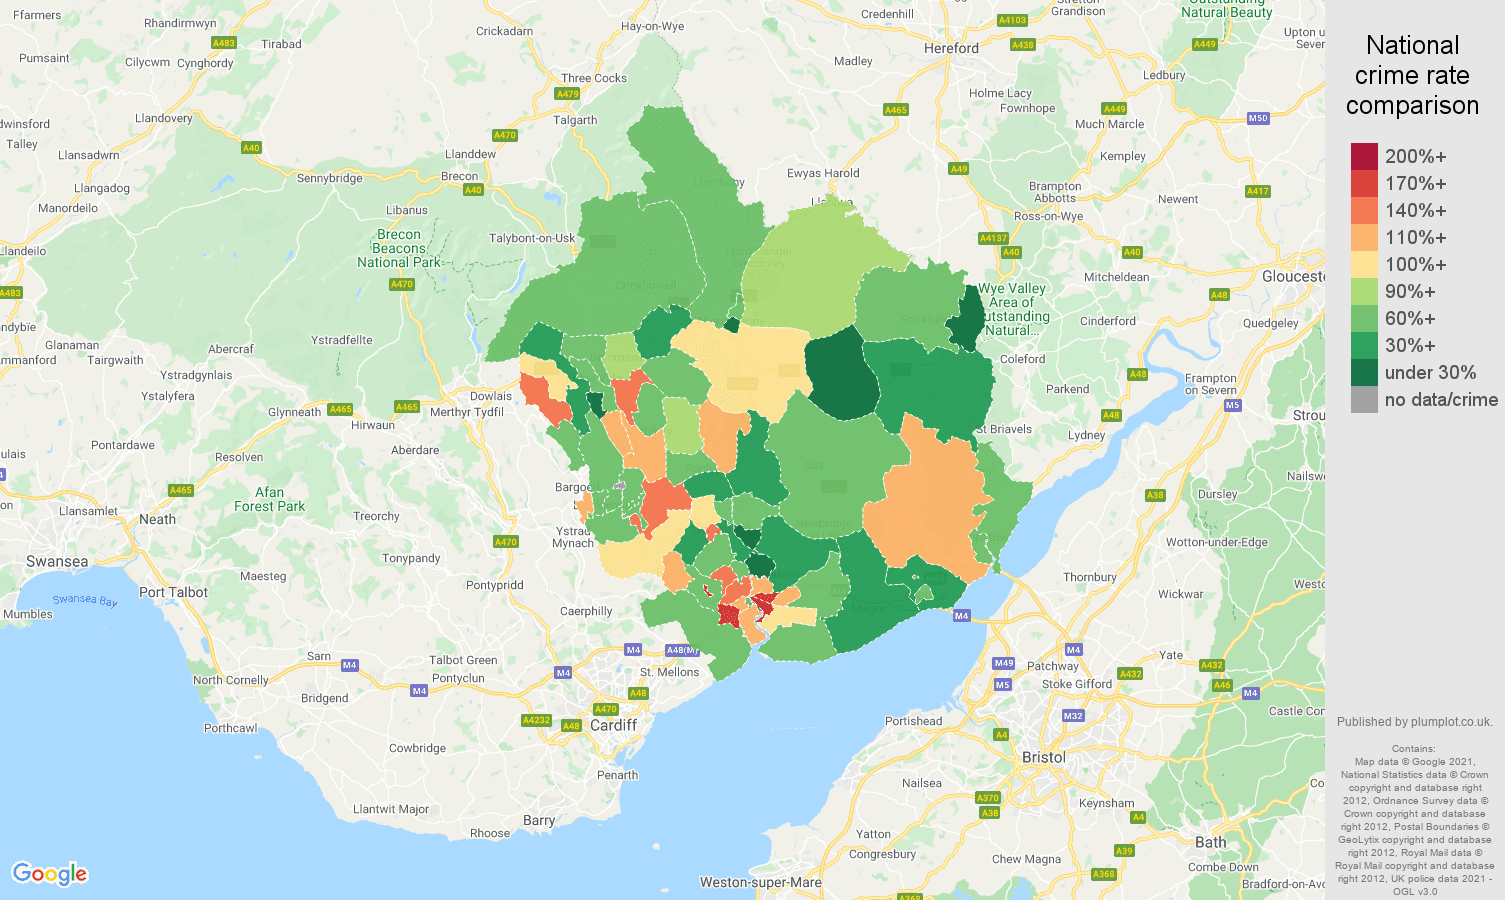 Newport burglary crime rate comparison map